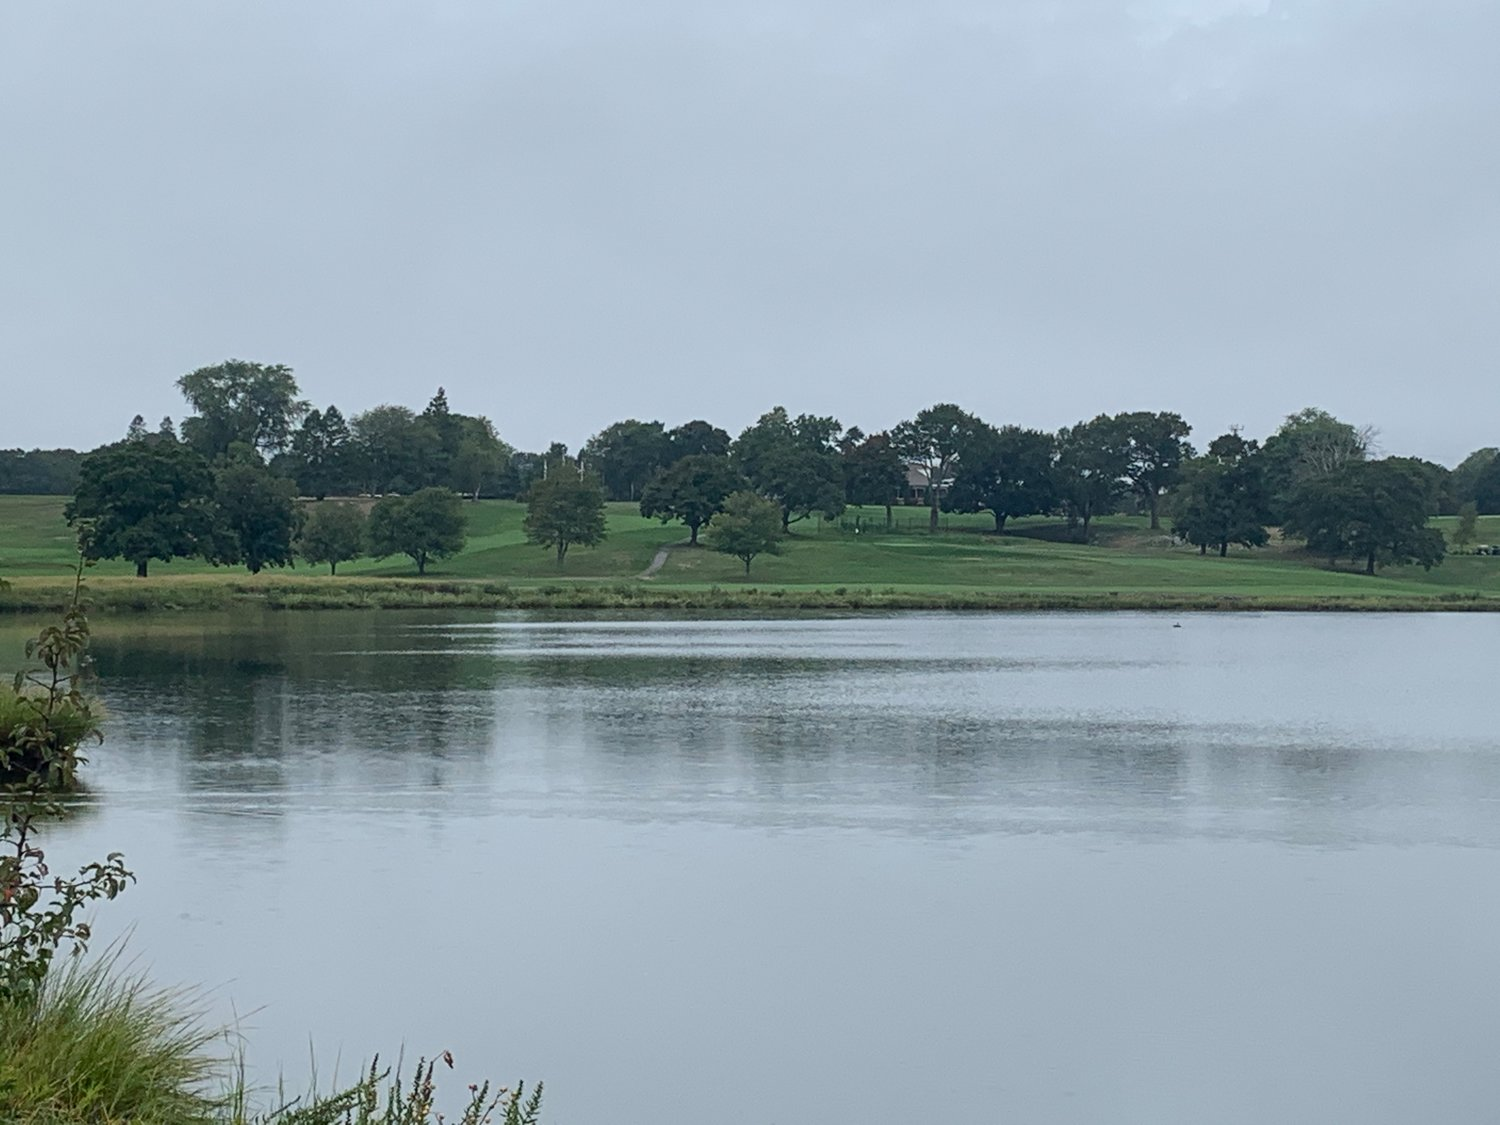 A view of the Metacomet Golf Club from the Watchemoket Cove off Veterans Memorial Parkway.